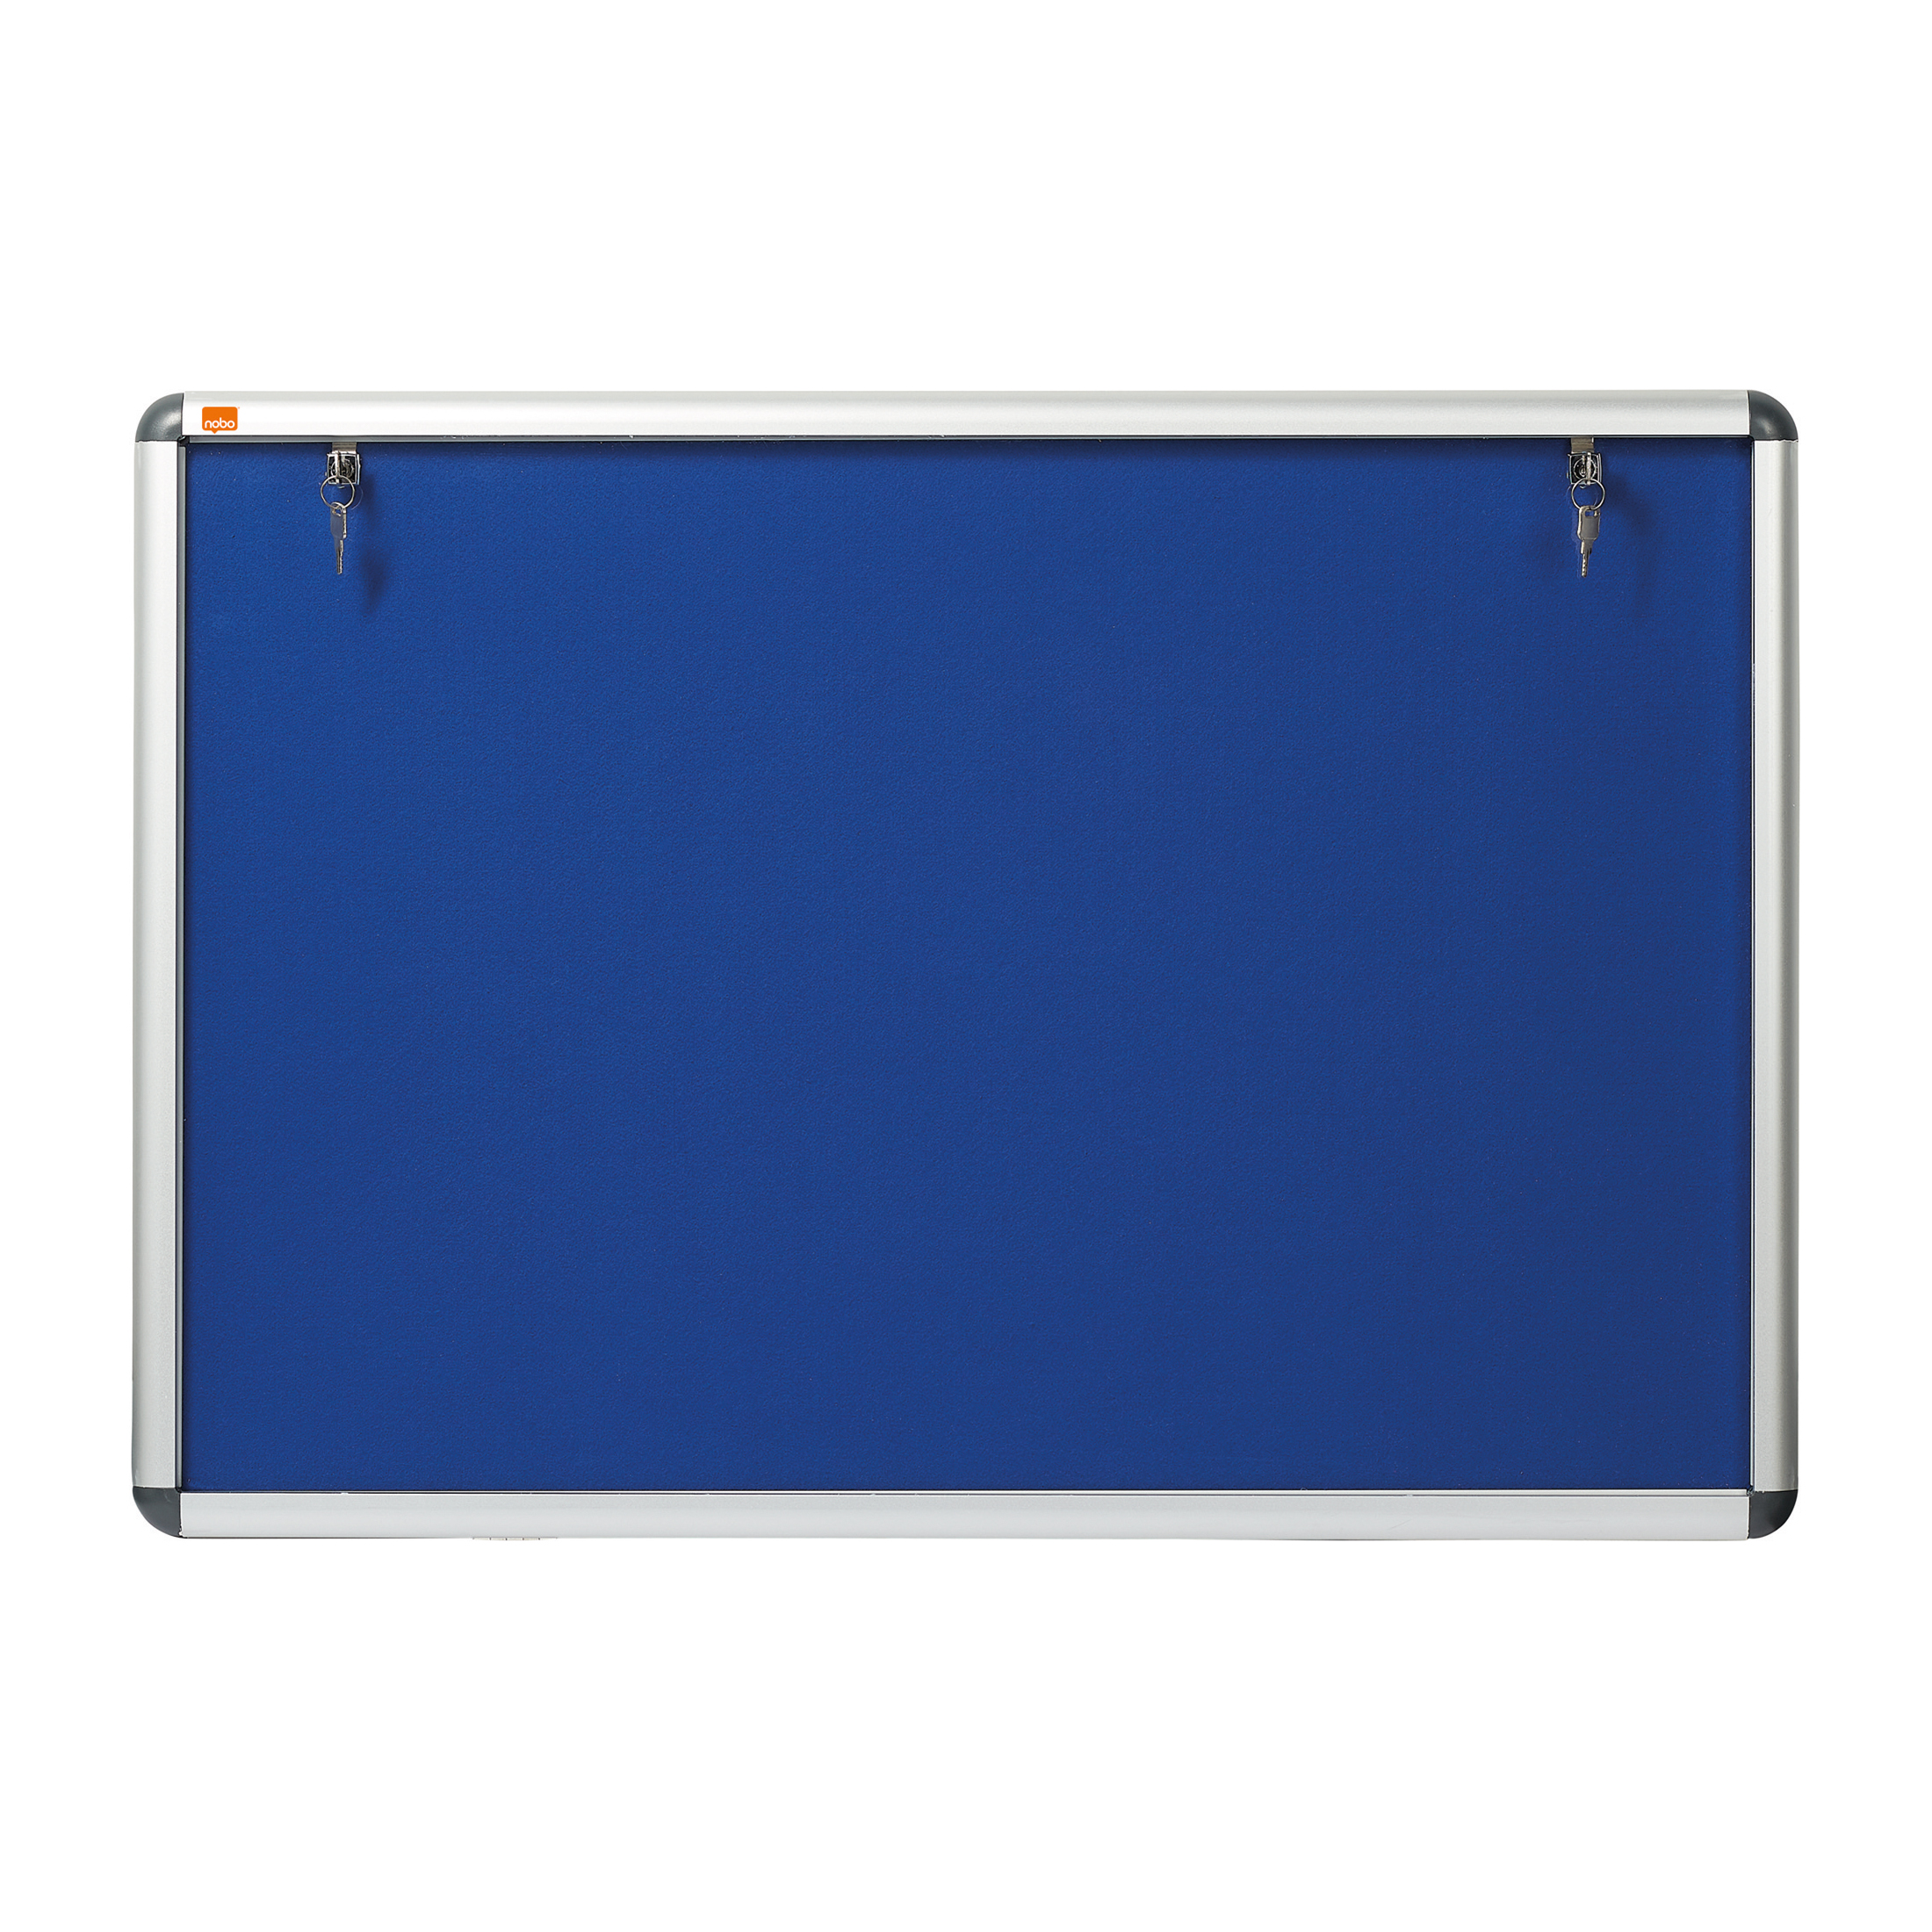 Nobo Display Cabinet Noticeboard Visual Insert Lockable A1 W1025xH745mm Blue Ref 1902048